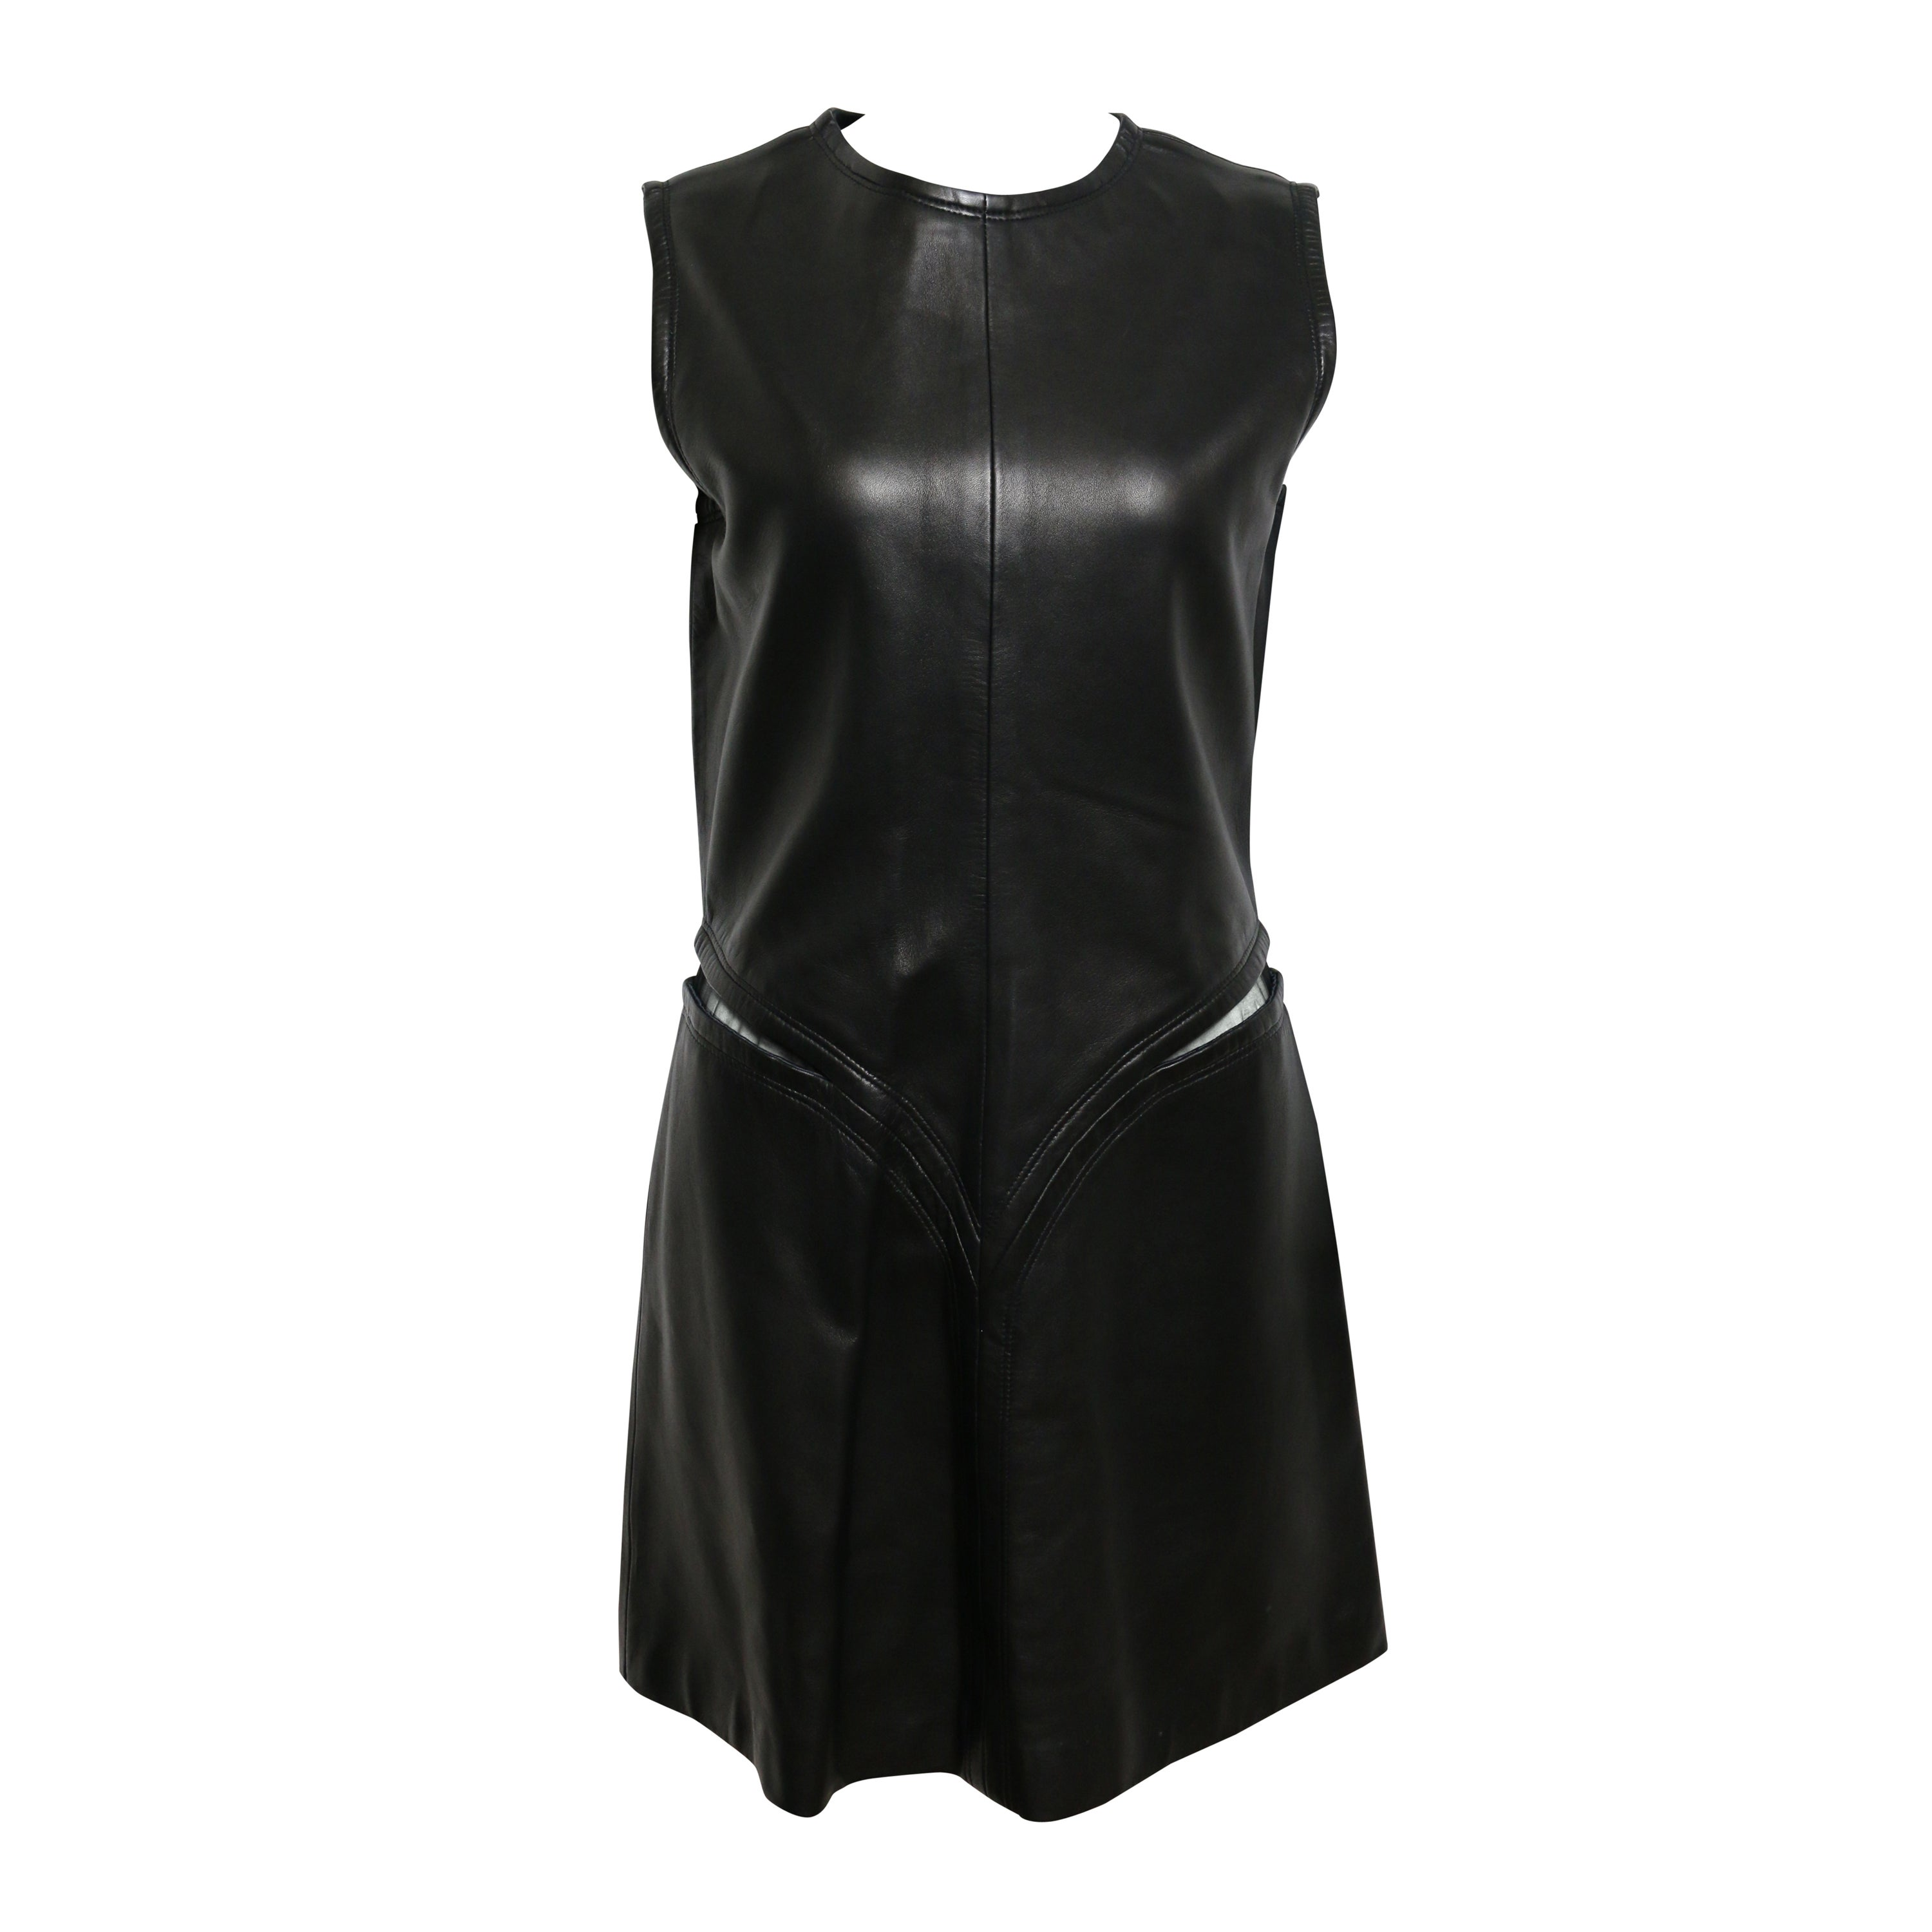 6f626718492 Gianni Versace Cutout Black Leather Dress For Sale at 1stdibs